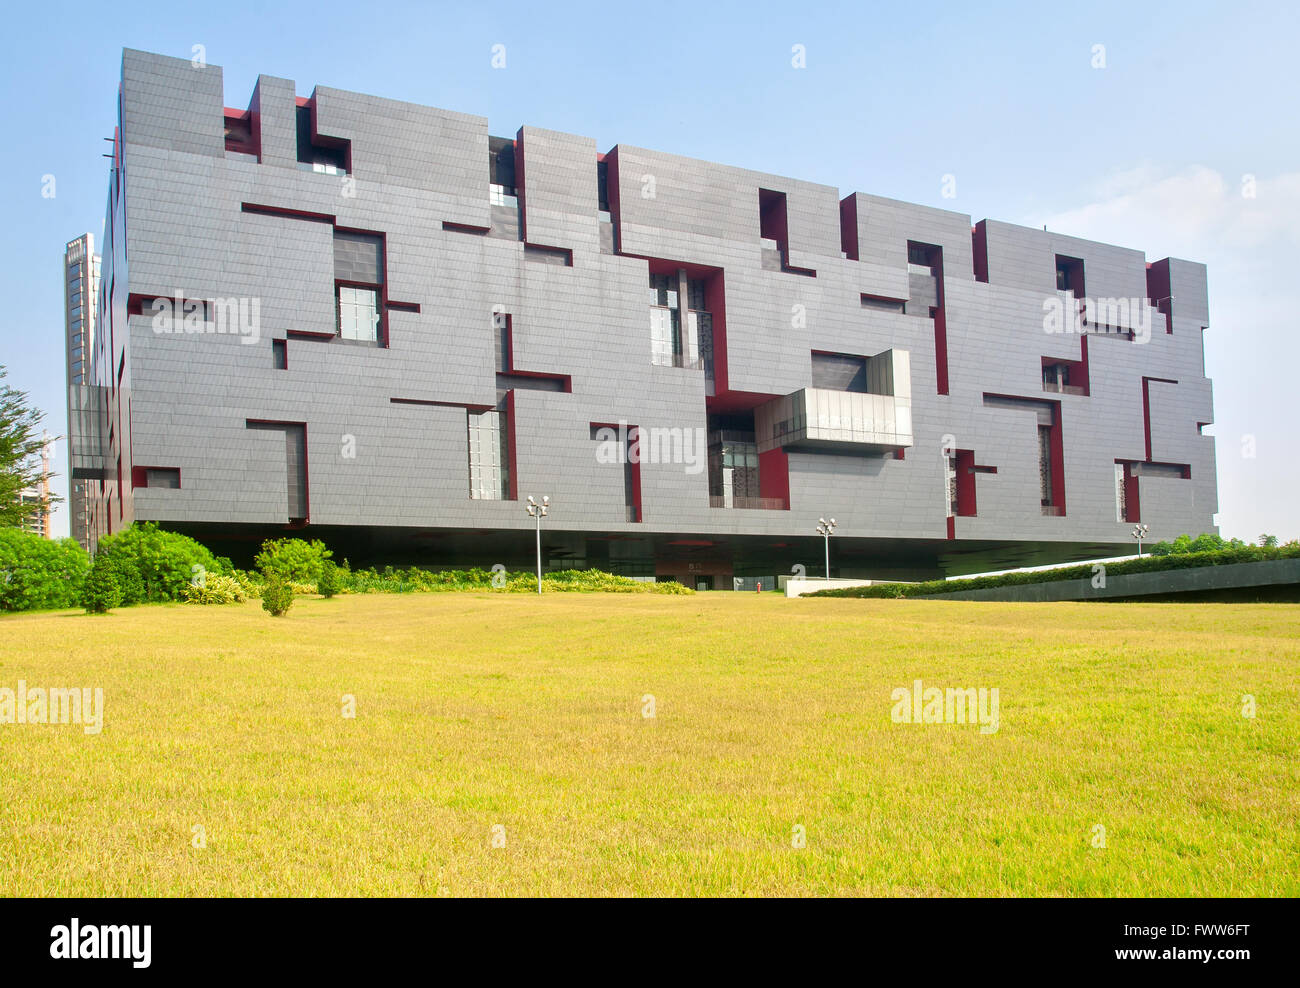 Guangdong Province museum - Stock Image